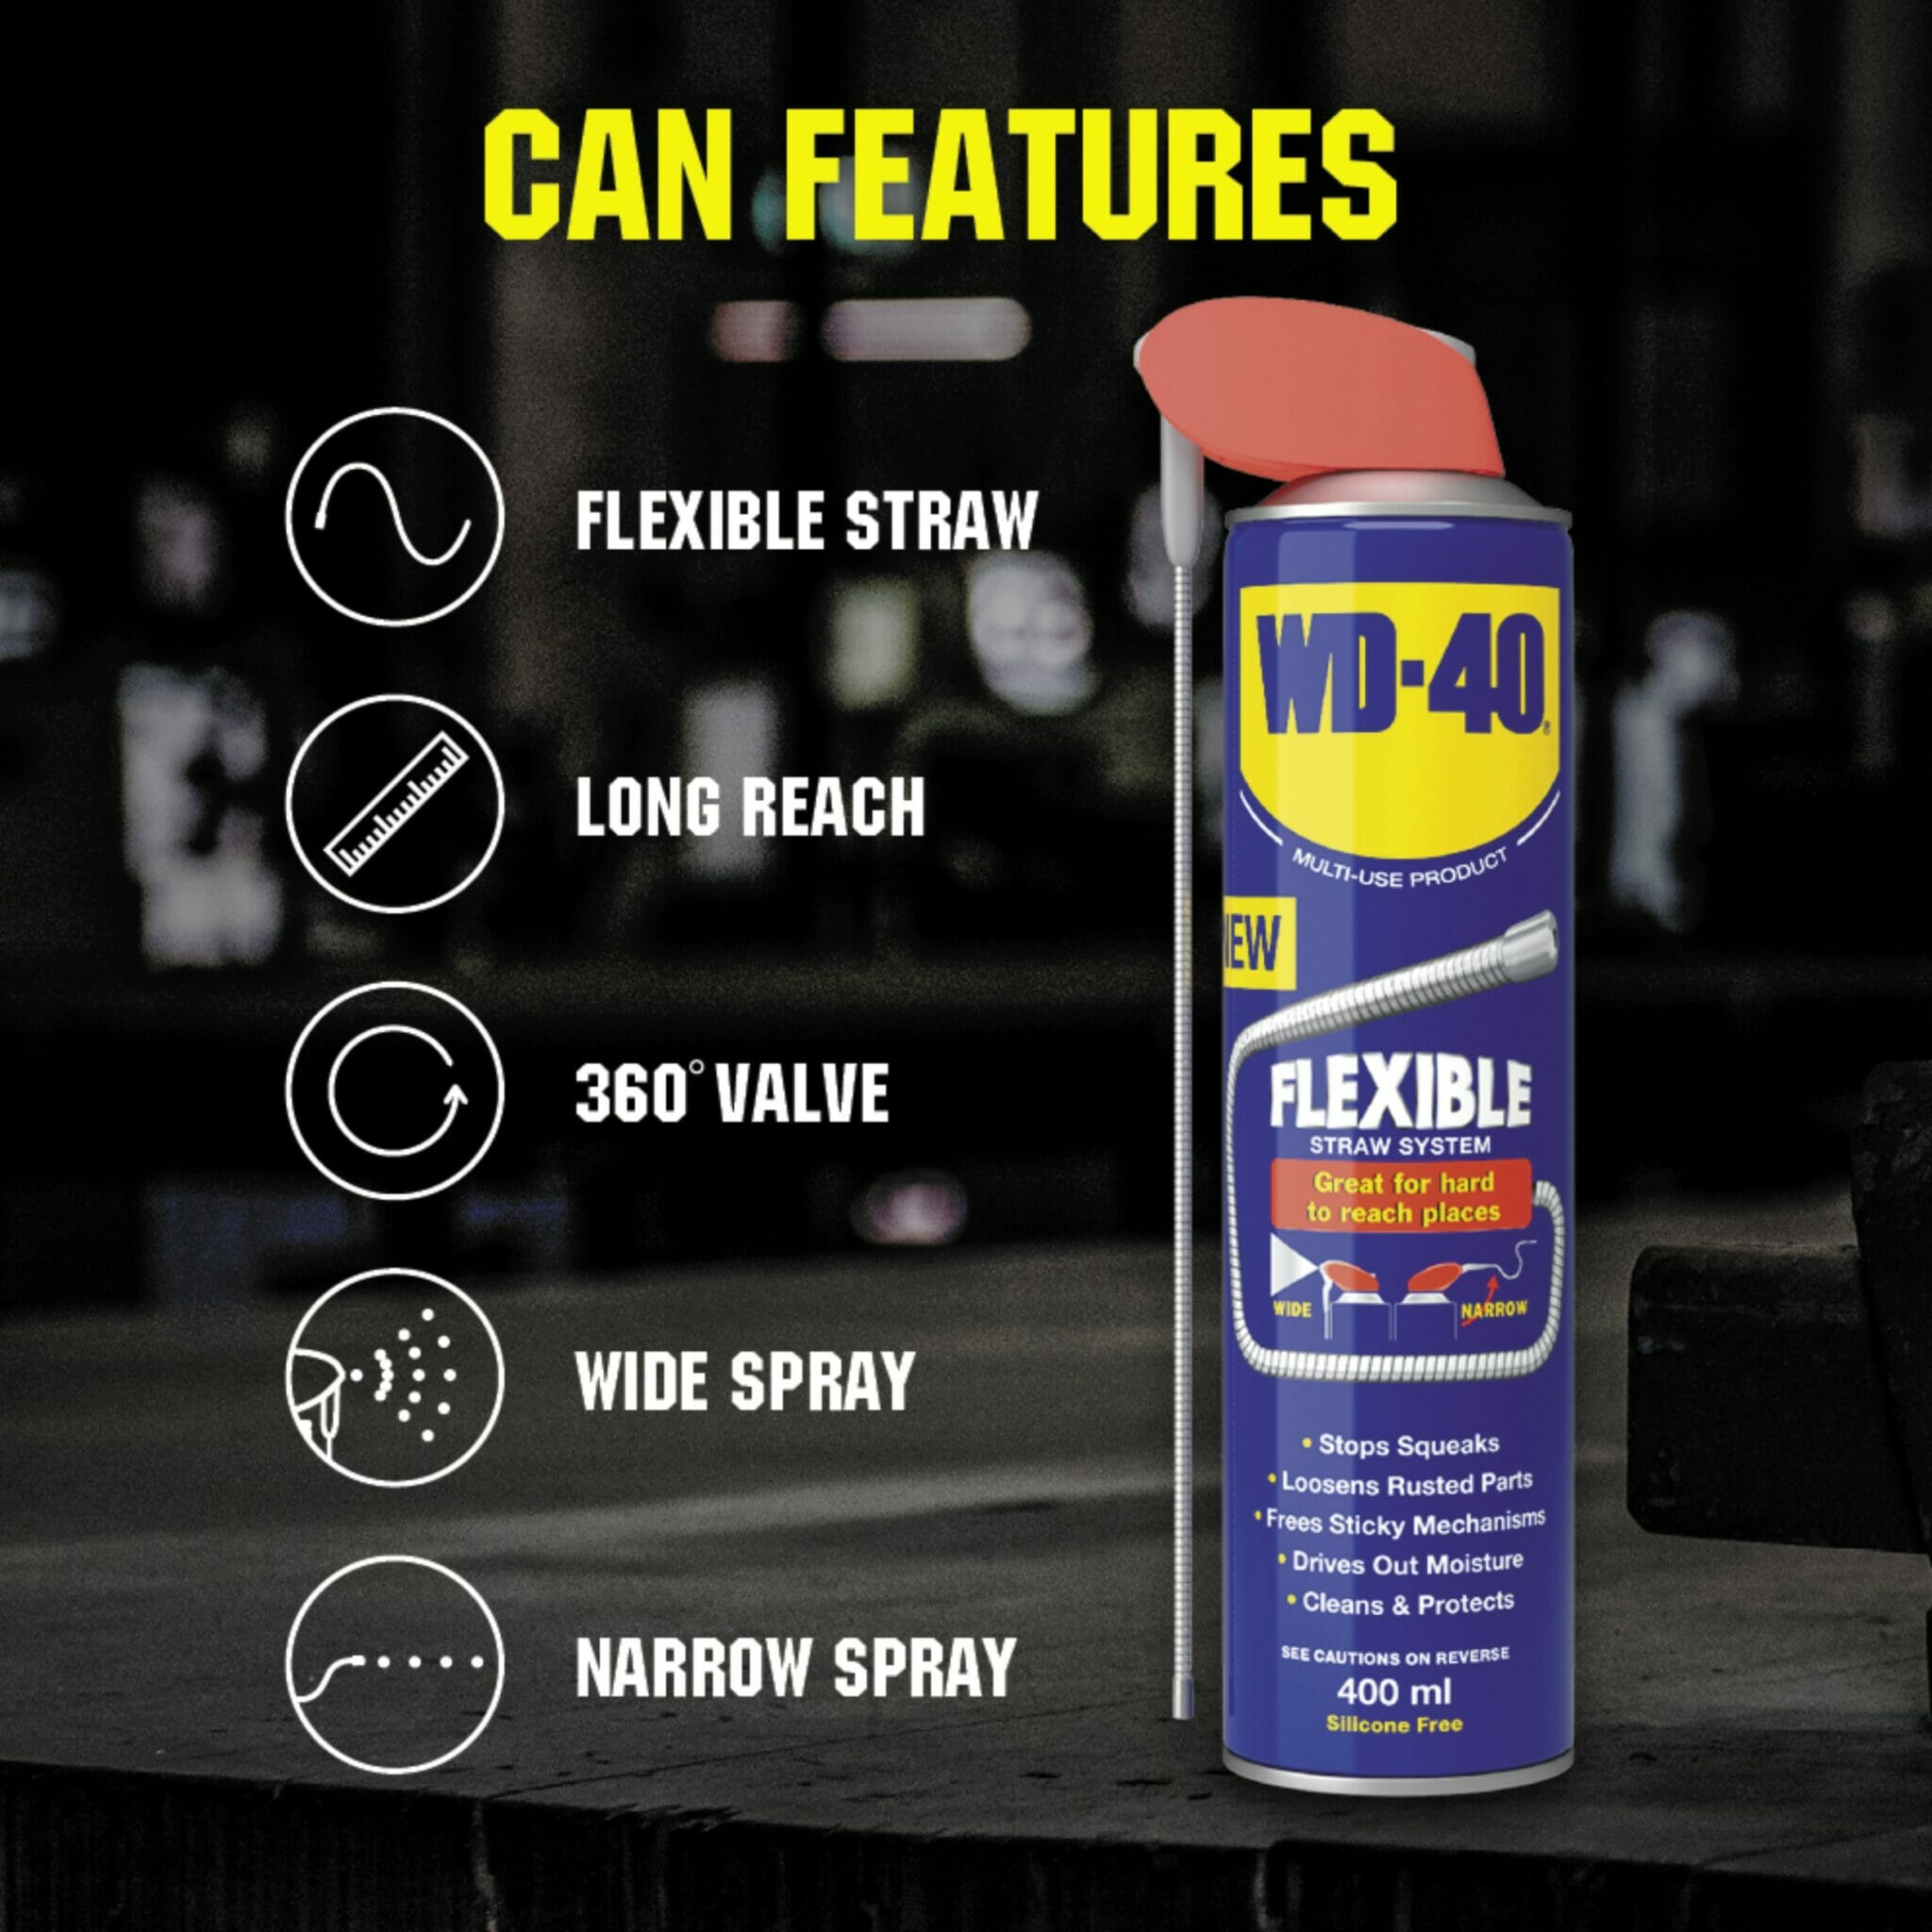 uk wd40 mup flexible straw 400ml can features lifestyle background